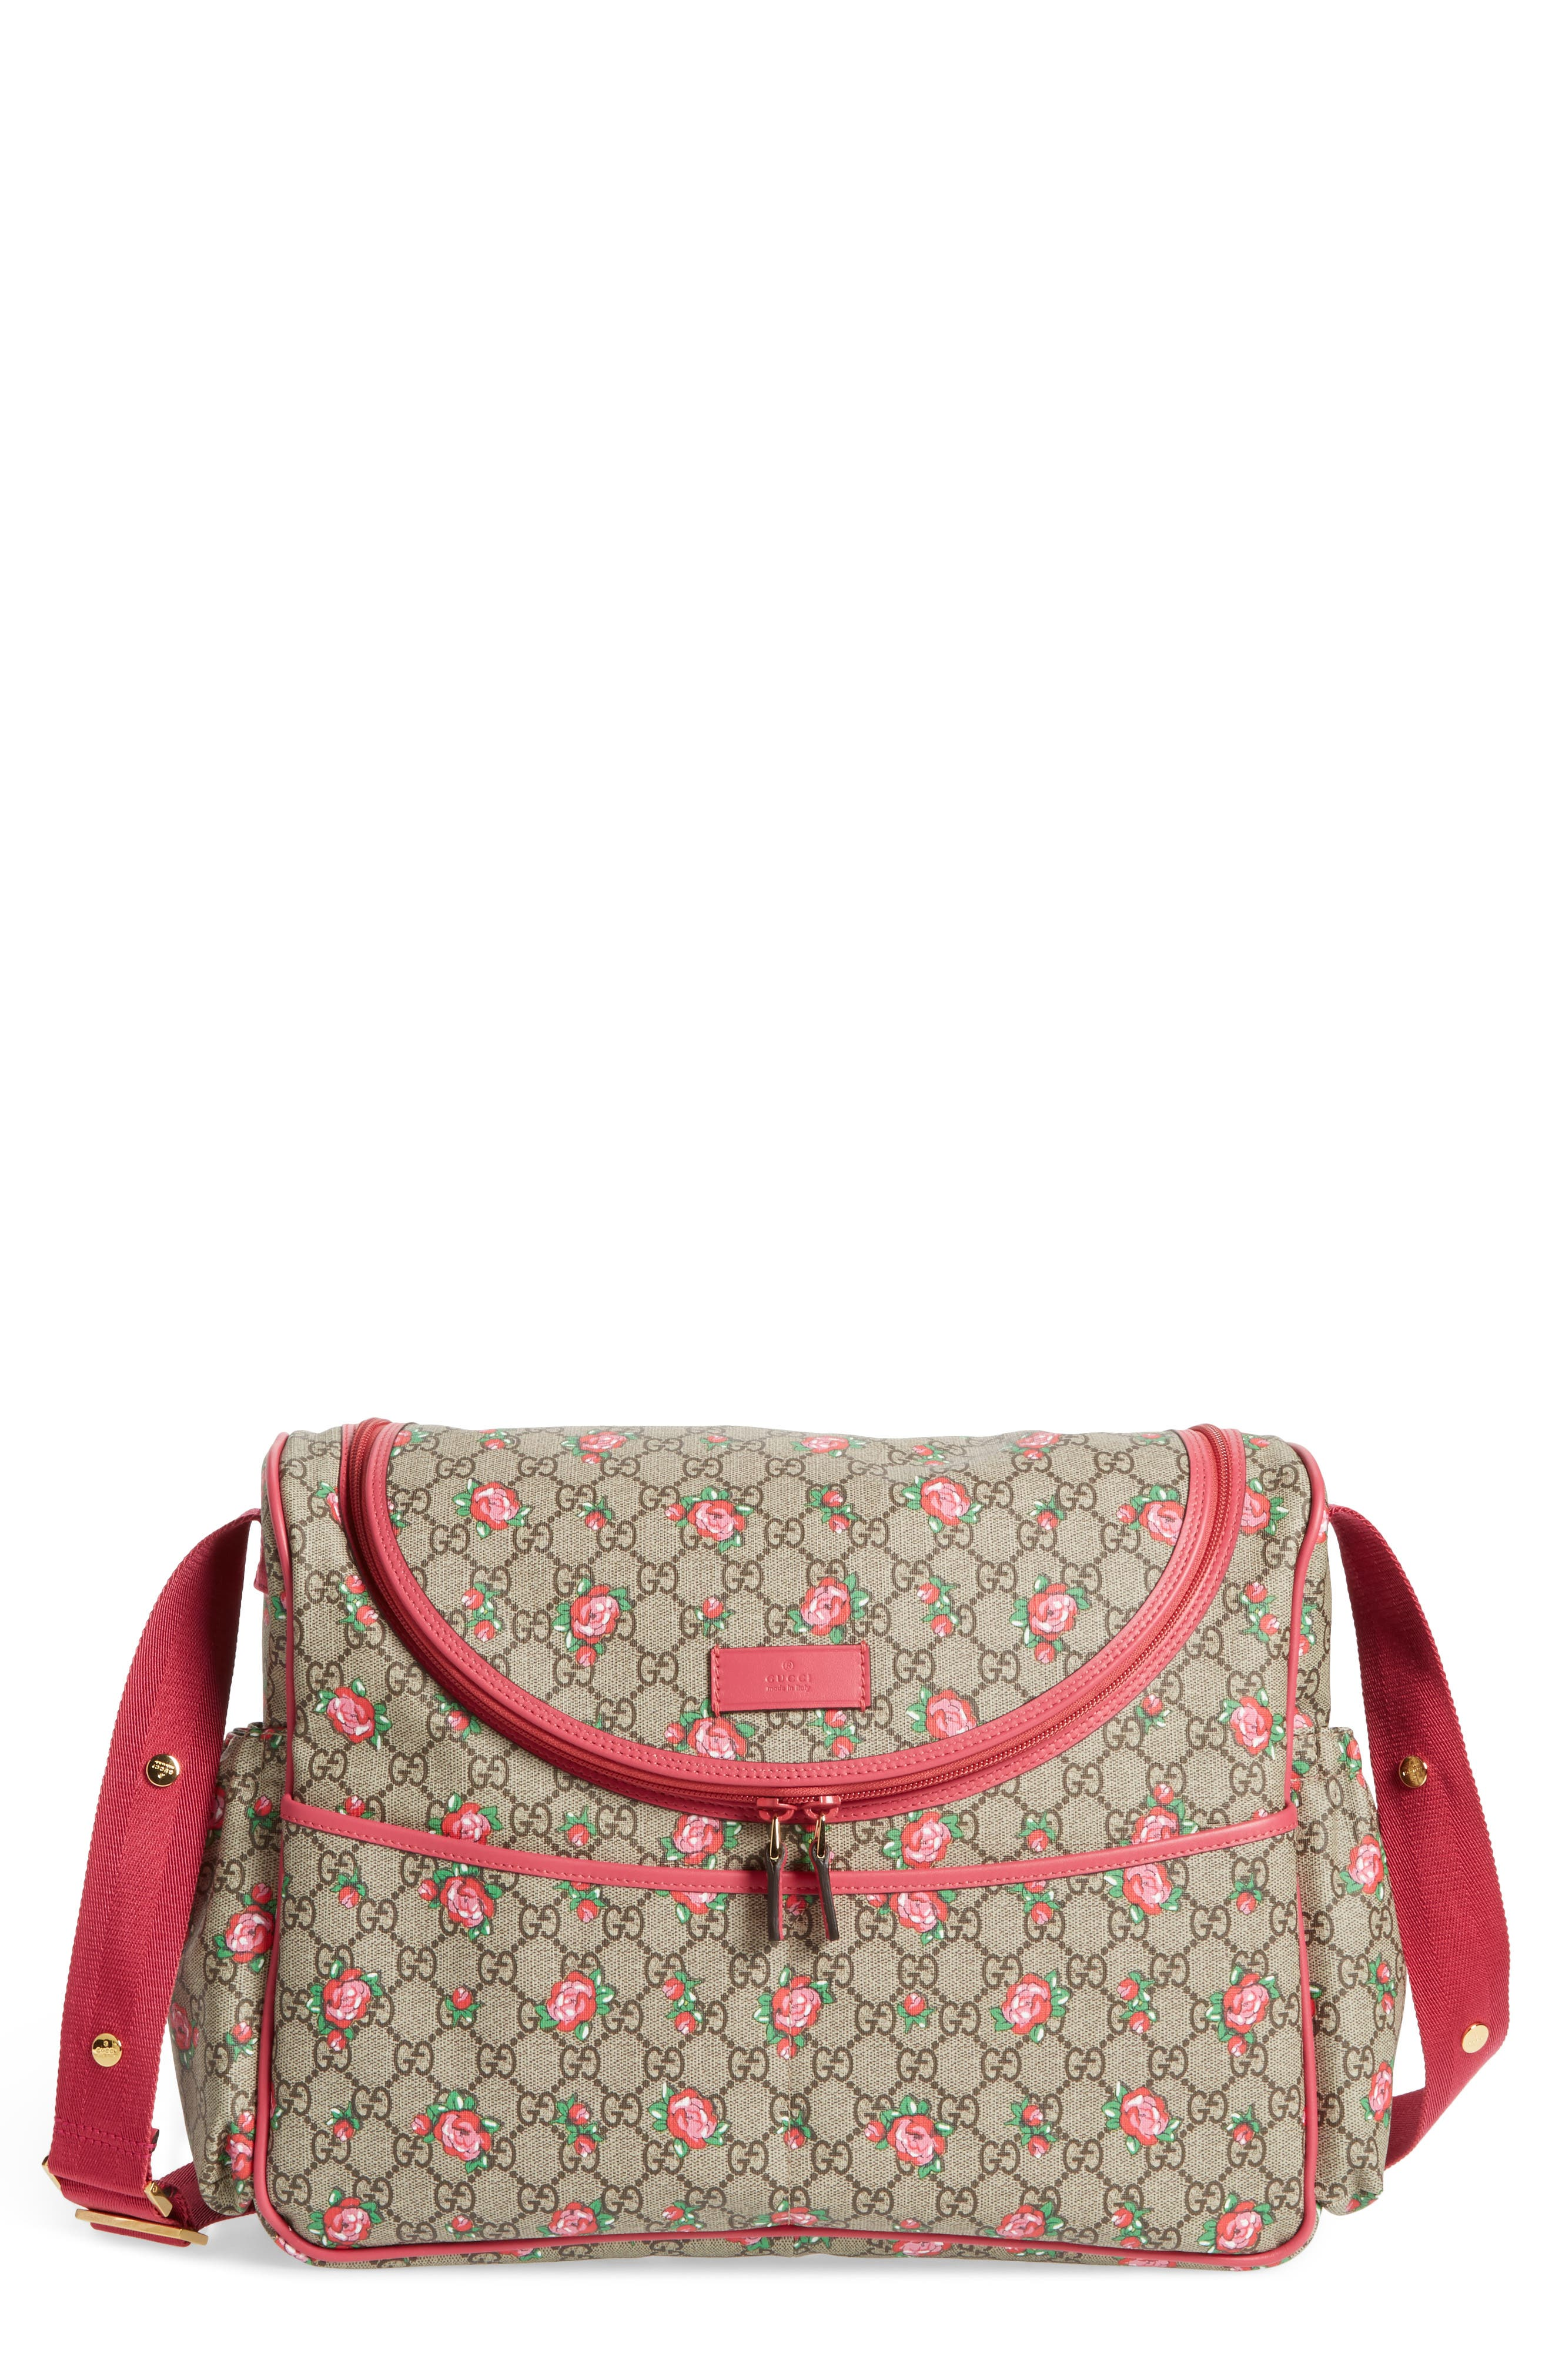 Alternate Image 1 Selected - Gucci Rose Bud GG Supreme Diaper Bag